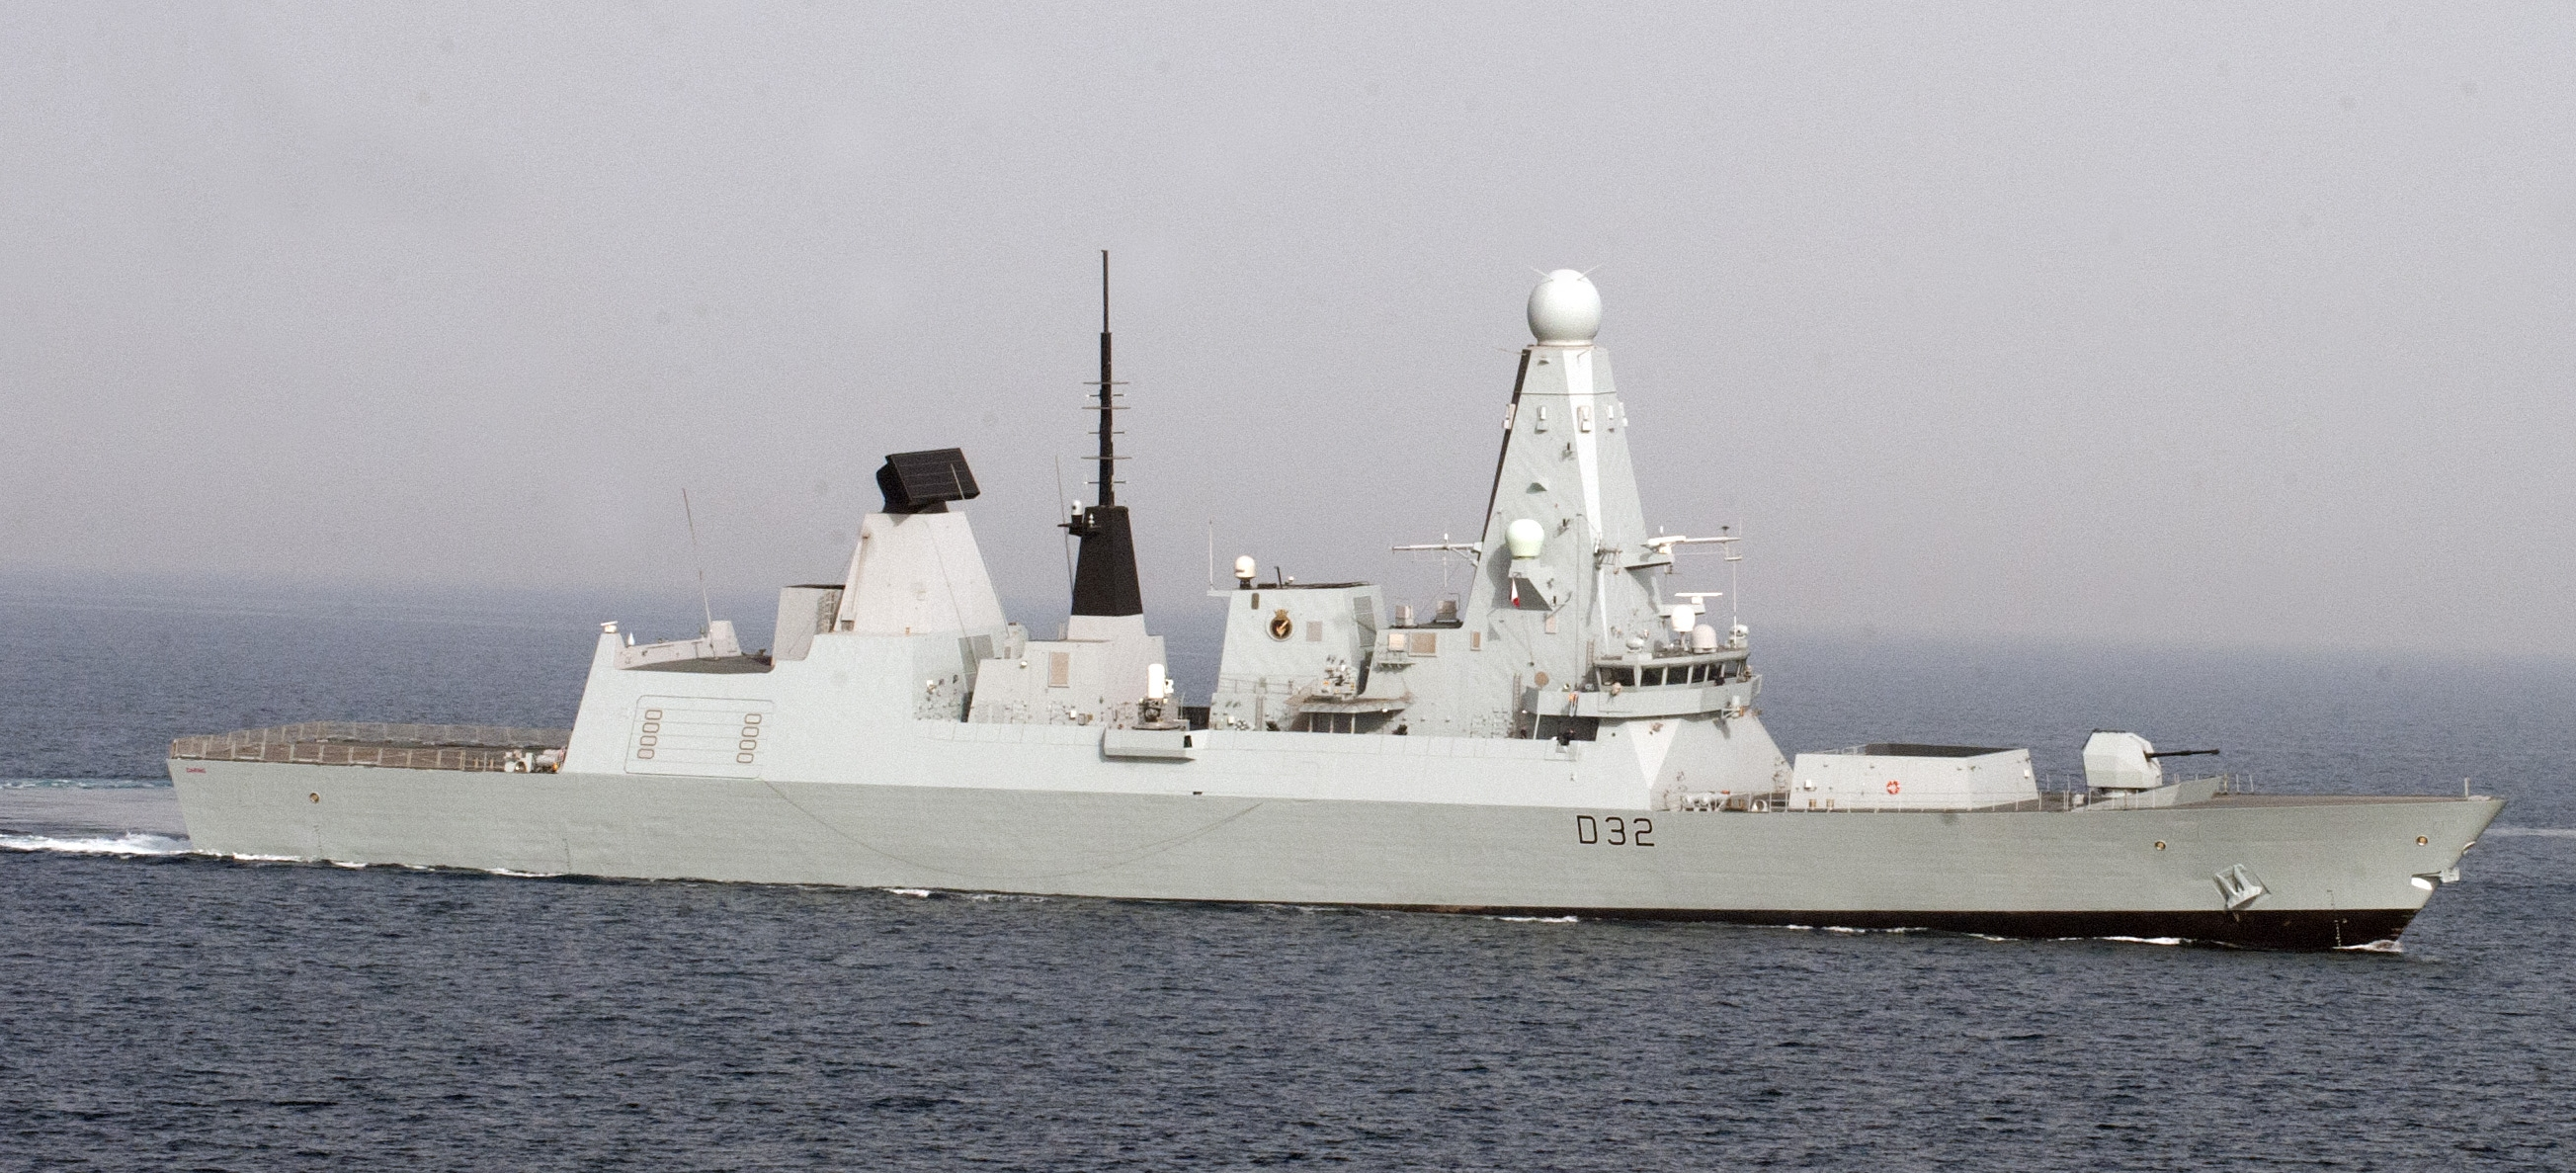 ... destroyer HMS Daring (D 32).jpg - Wikipedia, the free encyclopedia